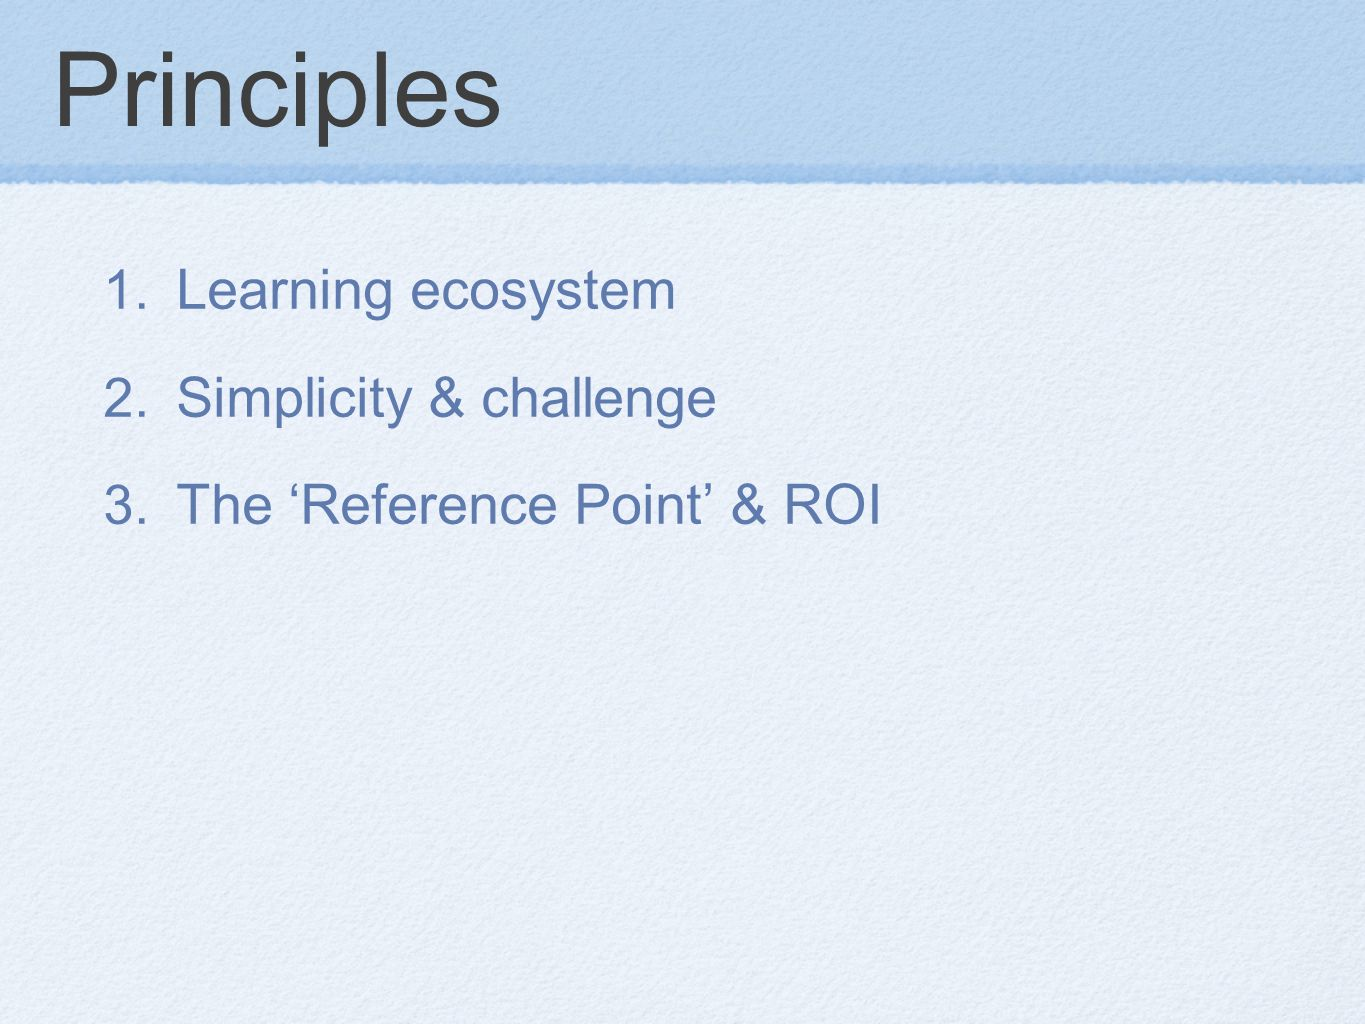 Principles 1. Learning ecosystem 2. Simplicity & challenge 3. The 'Reference Point' & ROI